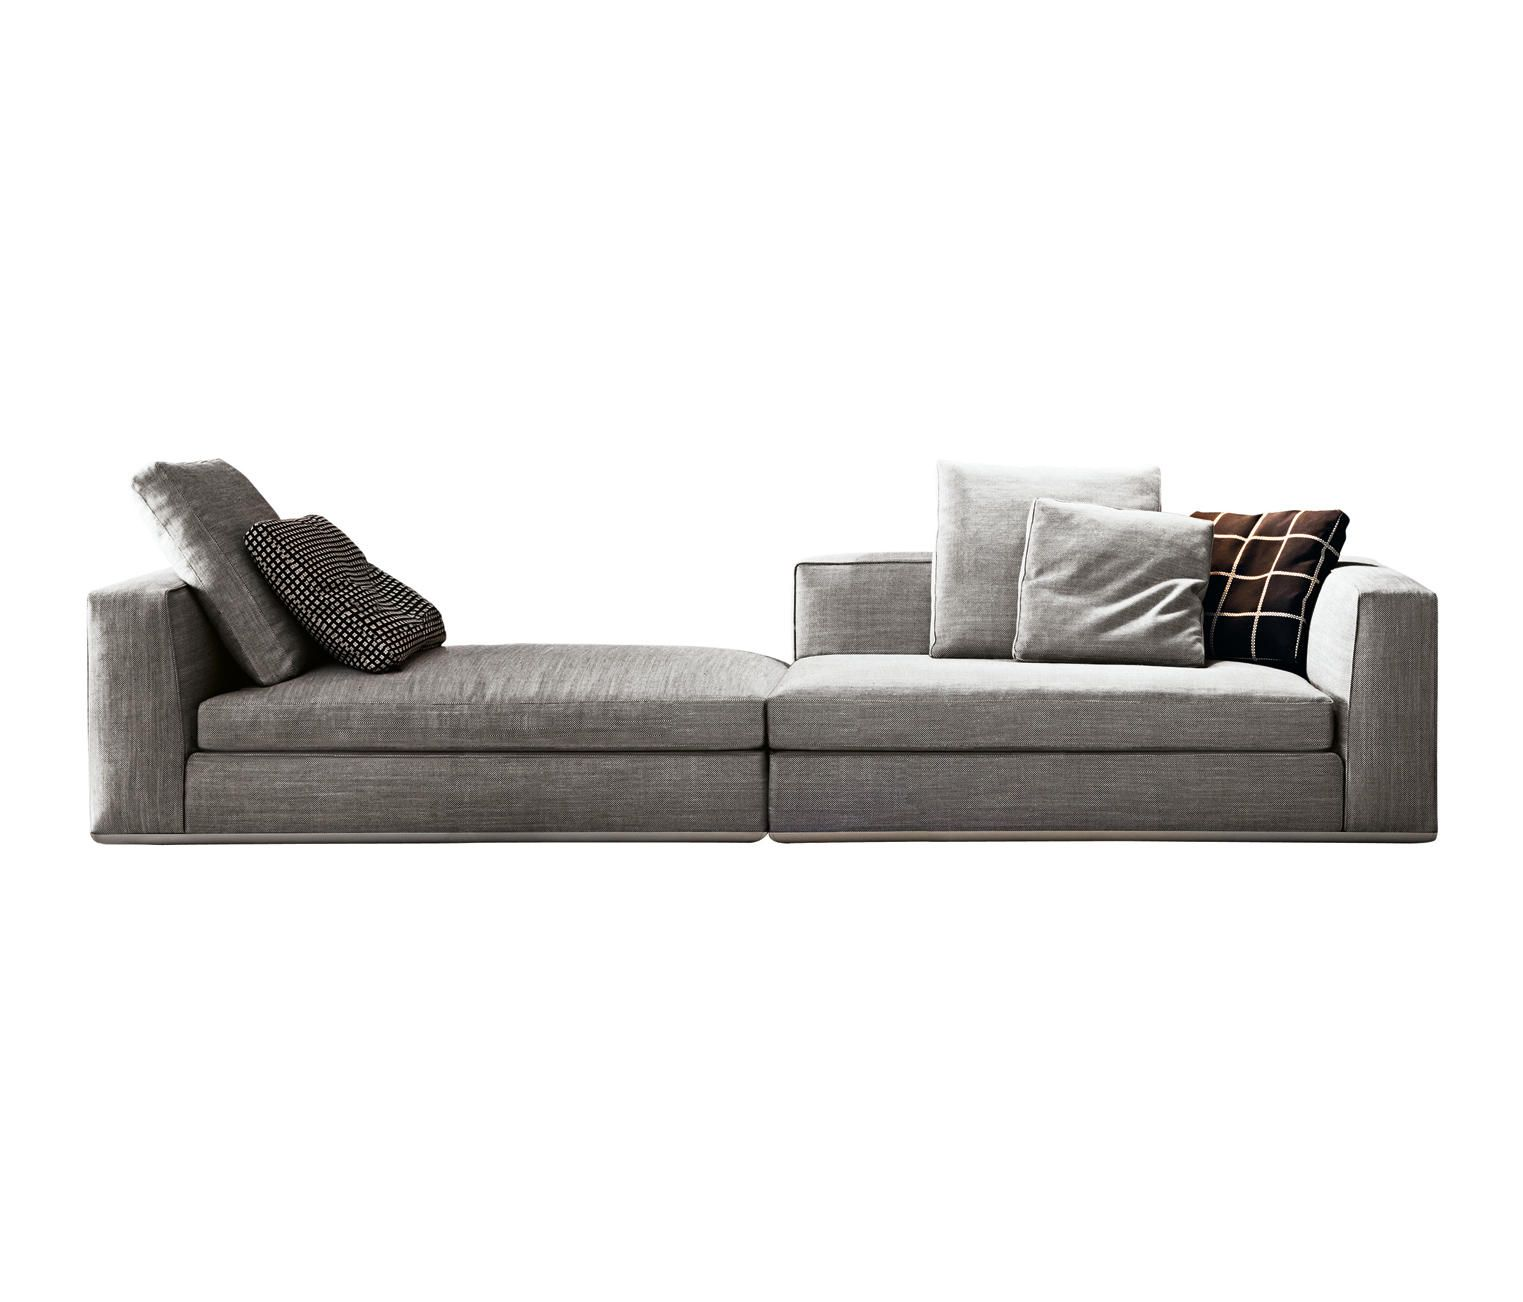 Powell, Or The Quintessential Modern Day Sofa As Minotti Sees It